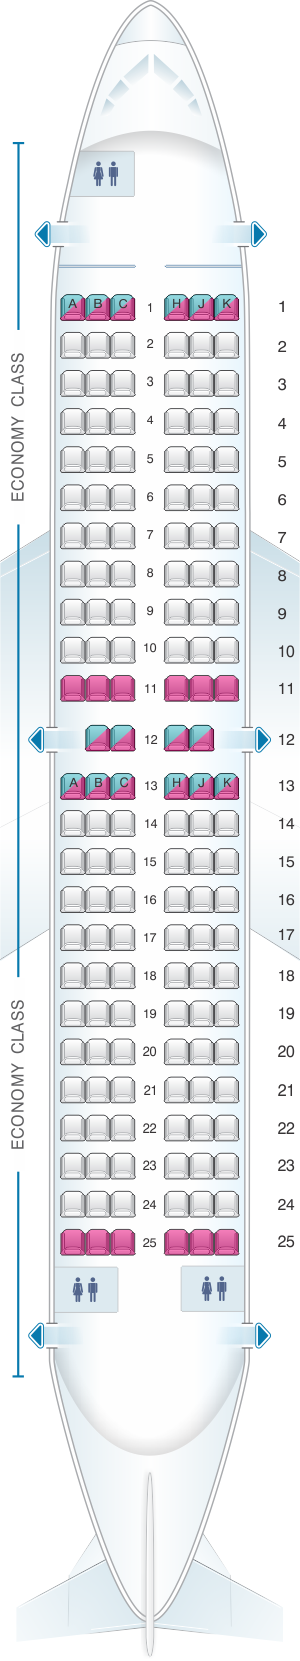 Seat map for Air Transat Boeing 737-700 US and South